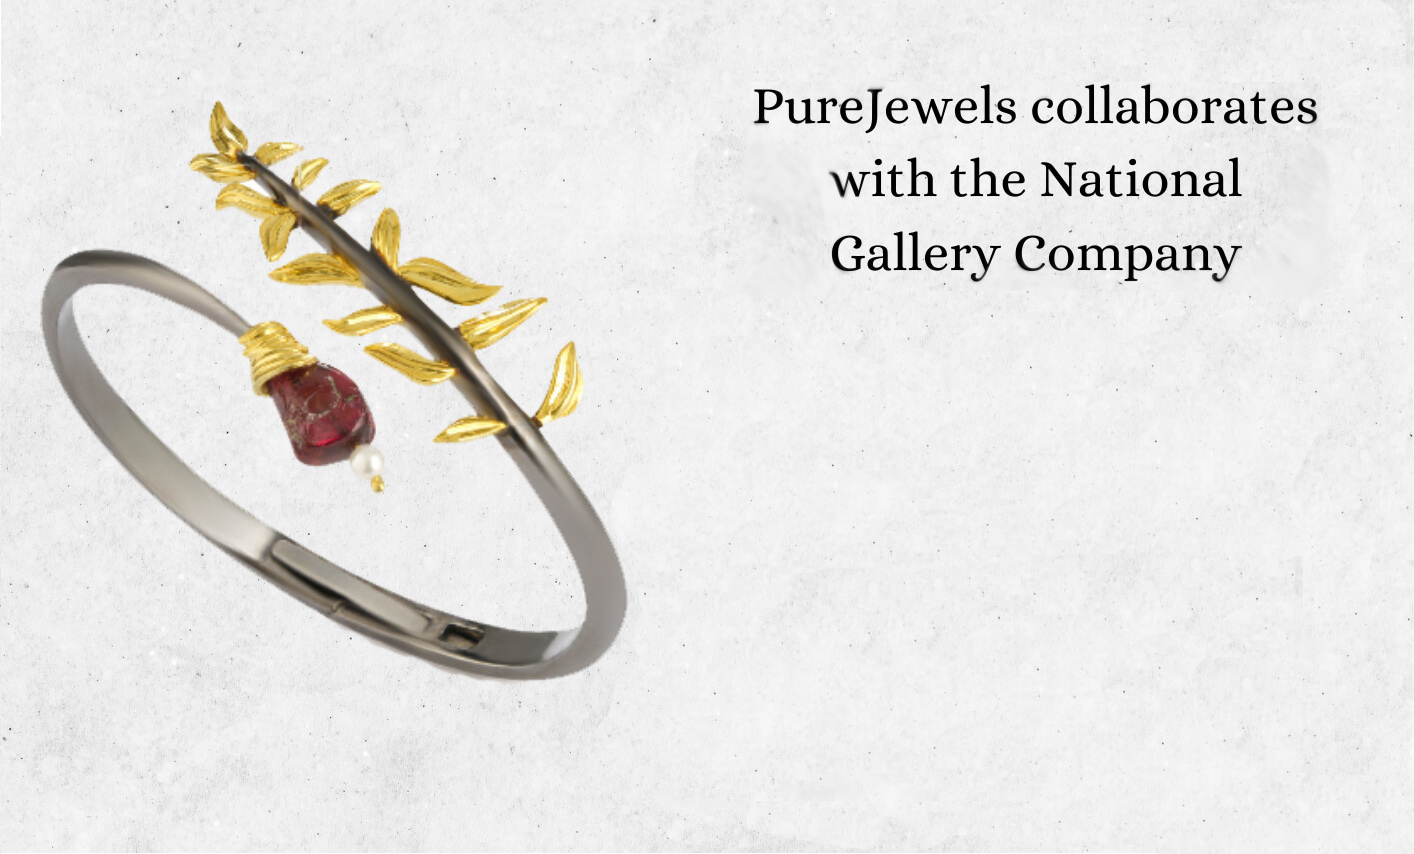 National Gallery Company launches first jewellery collection inspired by Artemisia